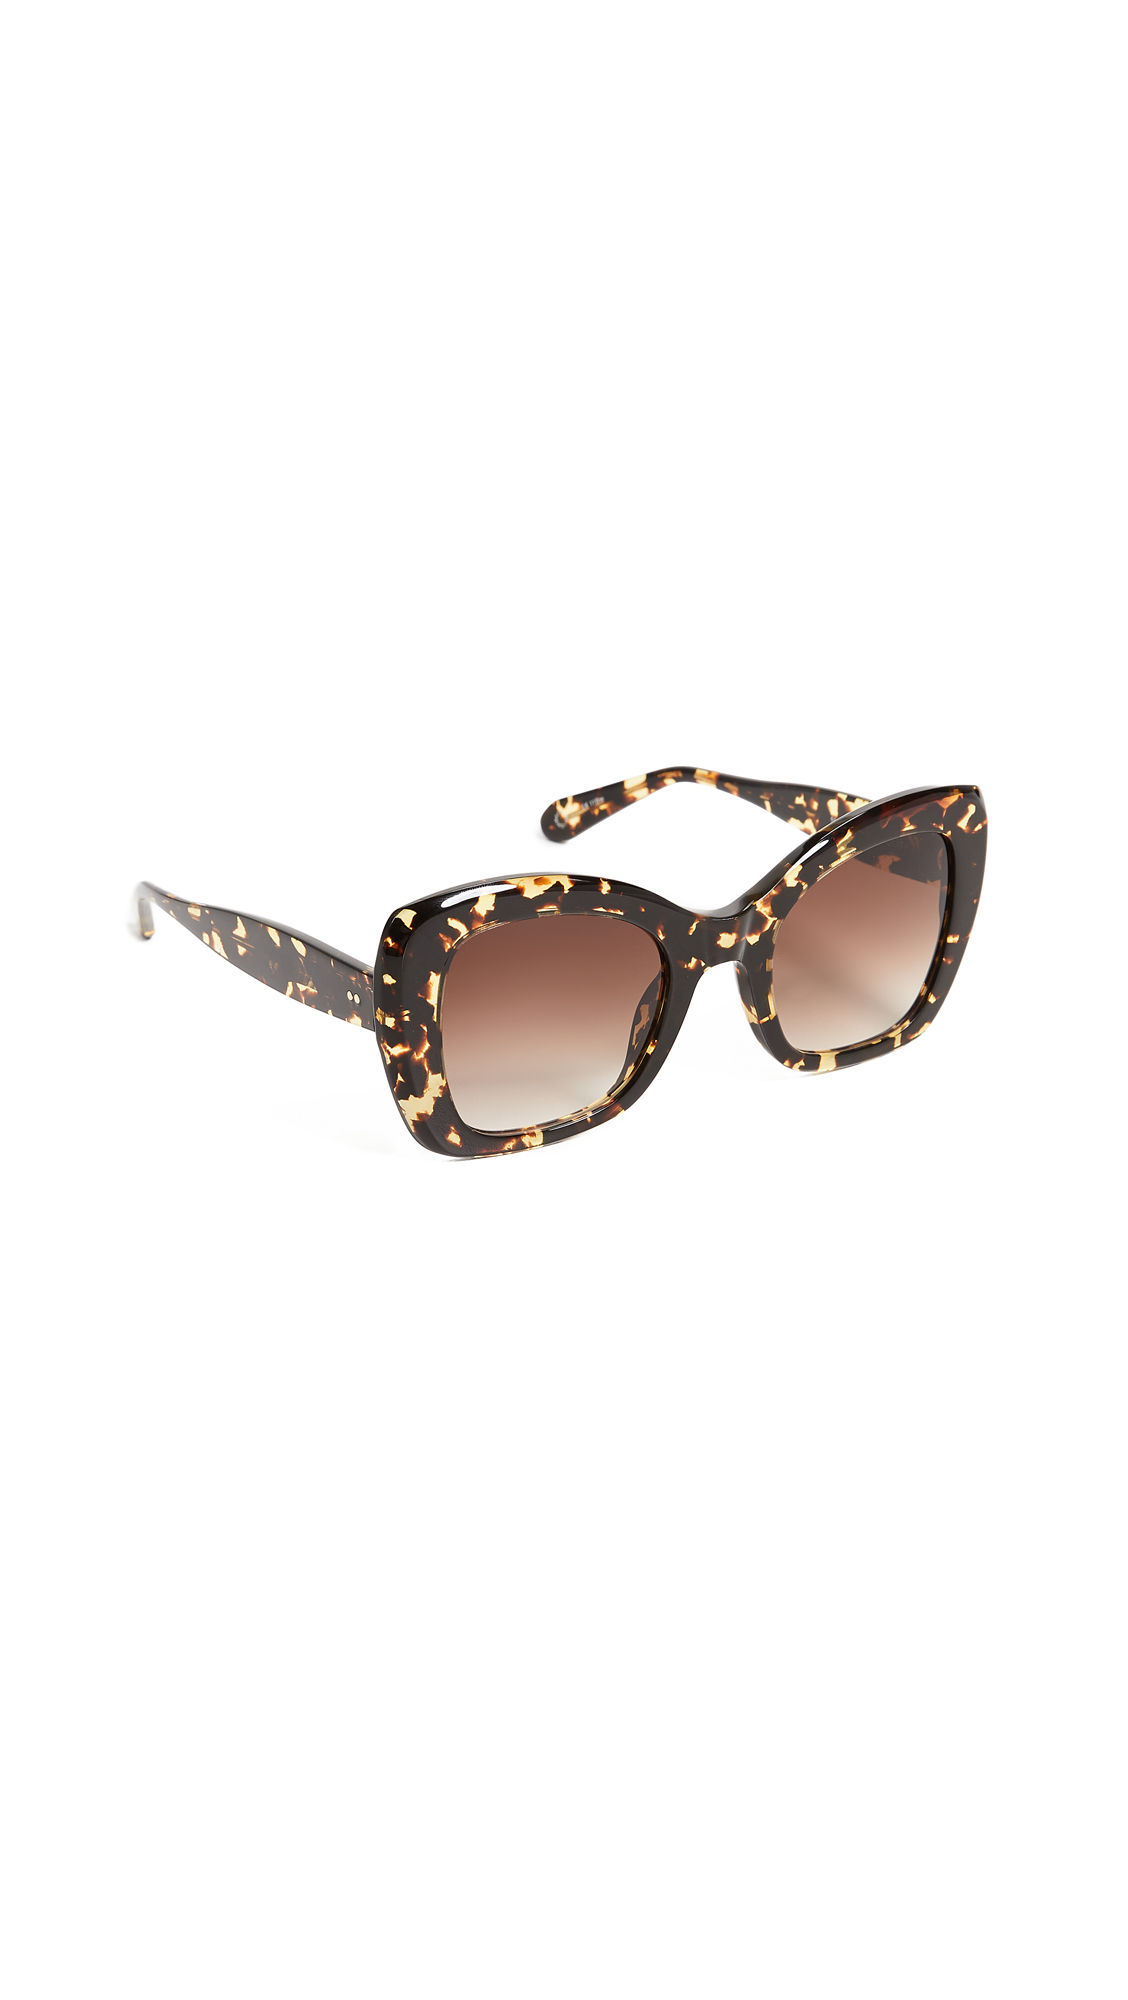 KREWE Felicity Acetate Two-Tone Butterfly Sunglasses in Tortoise/Brown